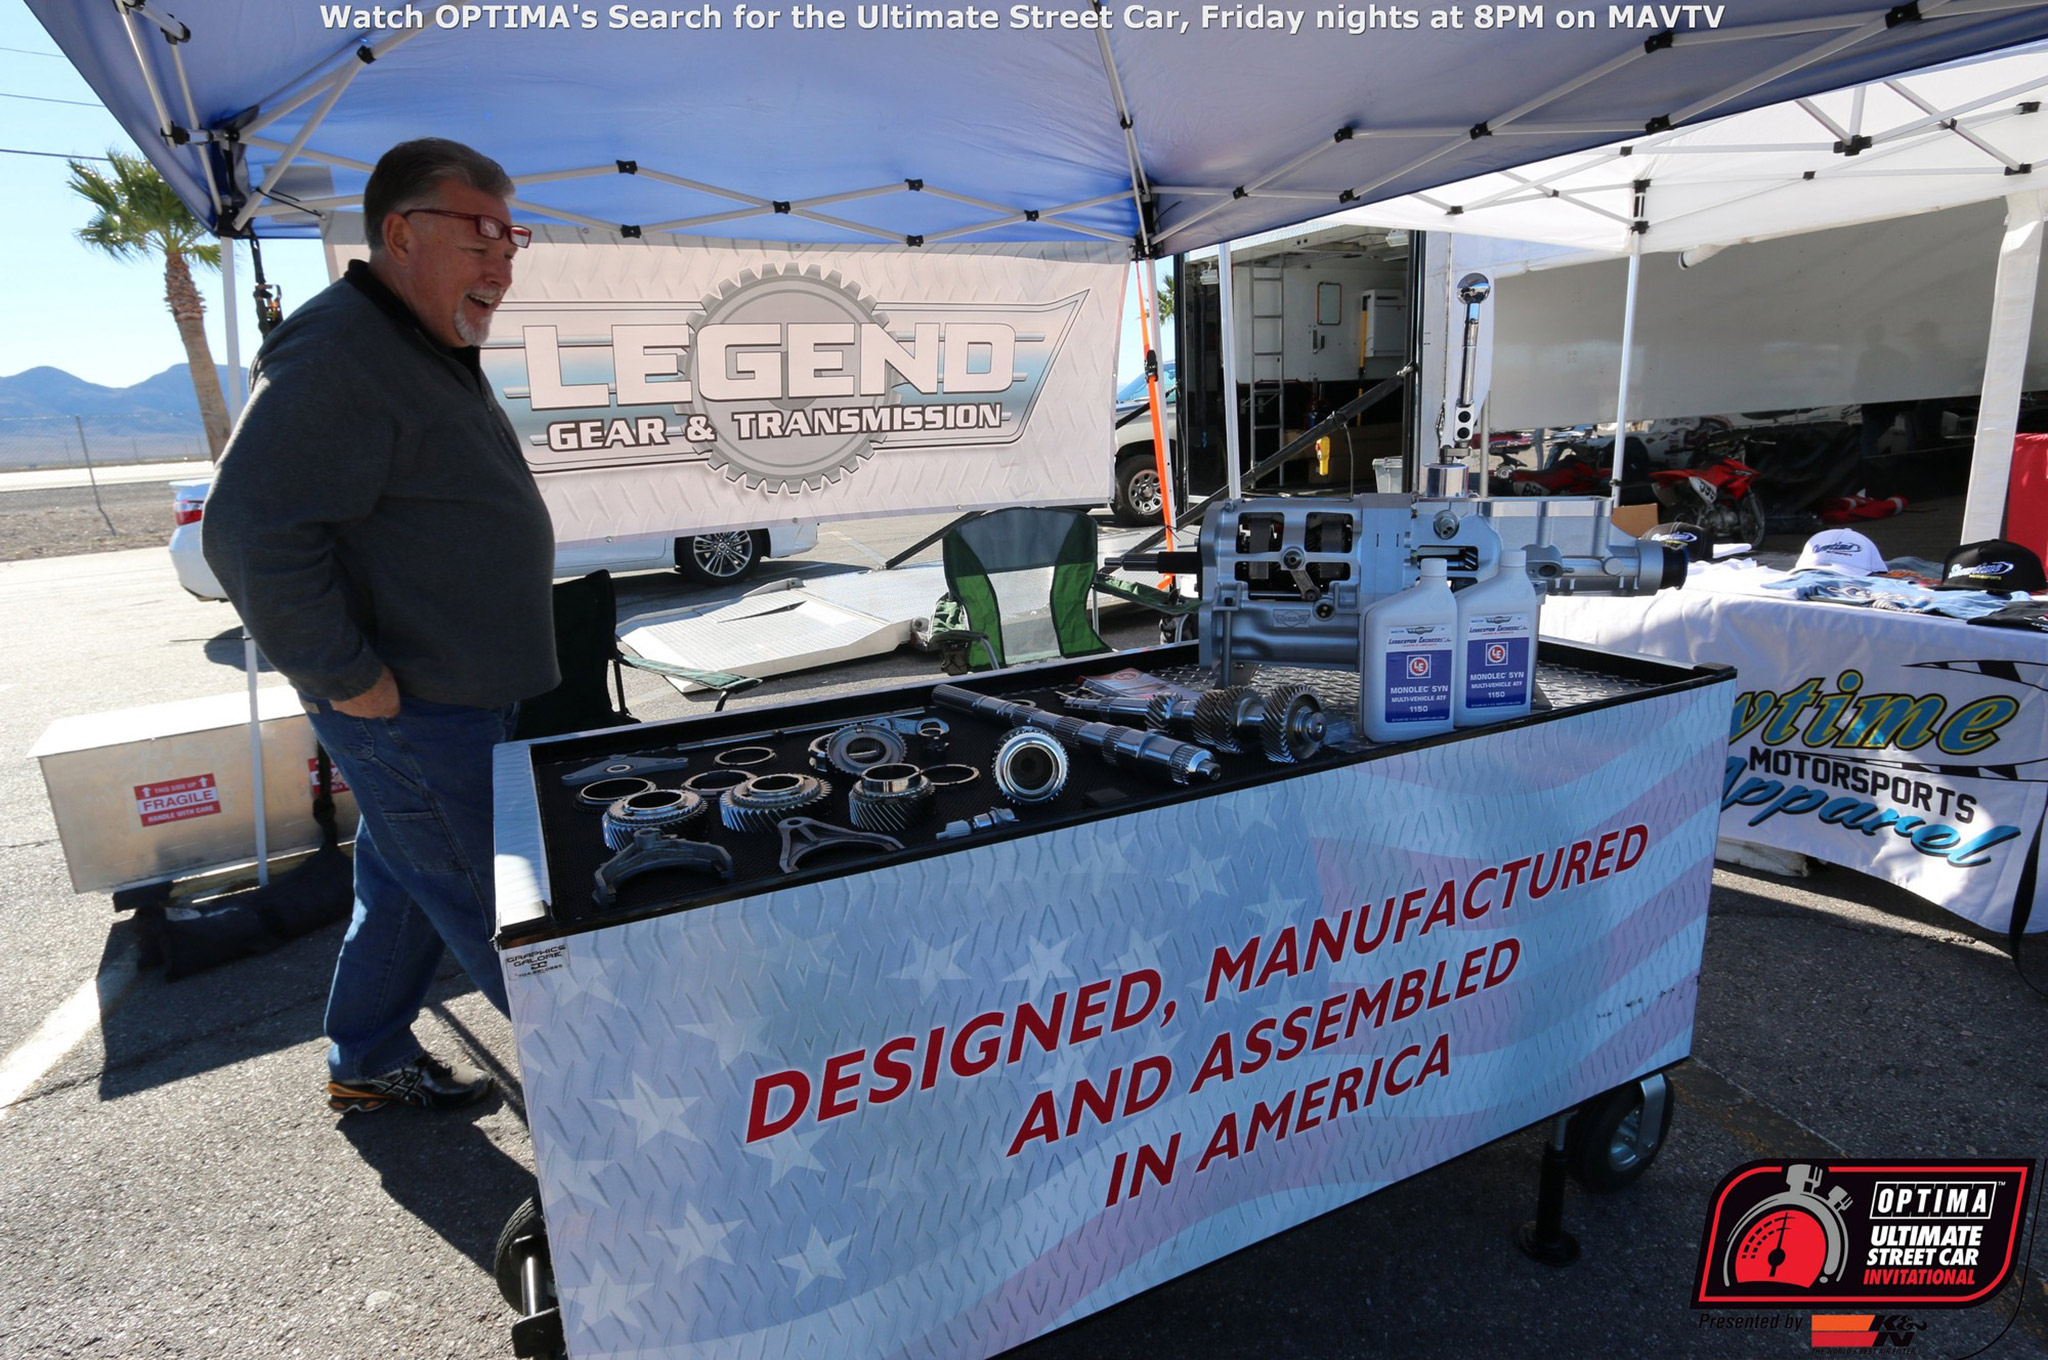 Legend Gear & Transmission is one of many great sponsors of the series and the OUSCI. Jack Simms' company has sponsored several vehicles in competition with their LGT-700, five-speed transmission.